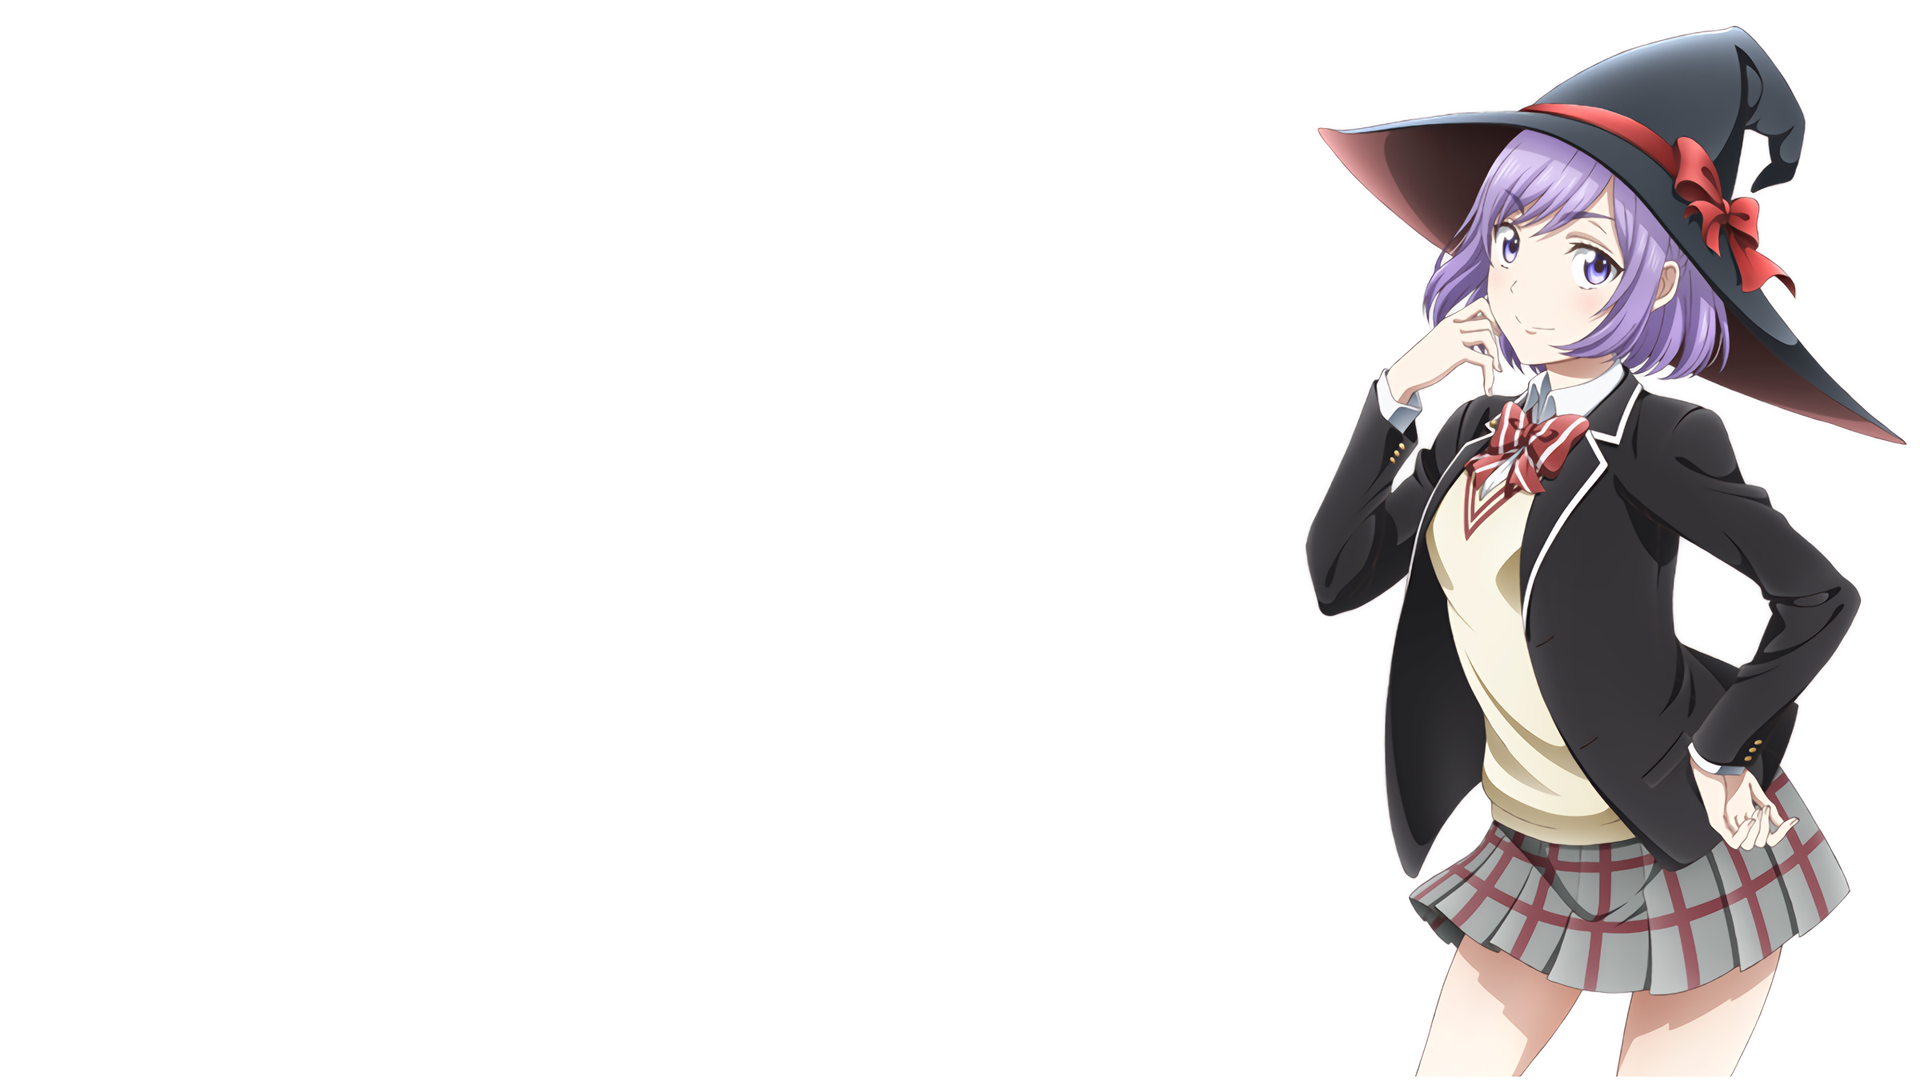 Simple White Best Girl Wallpaper 1920x1080 Yamada Kun And The